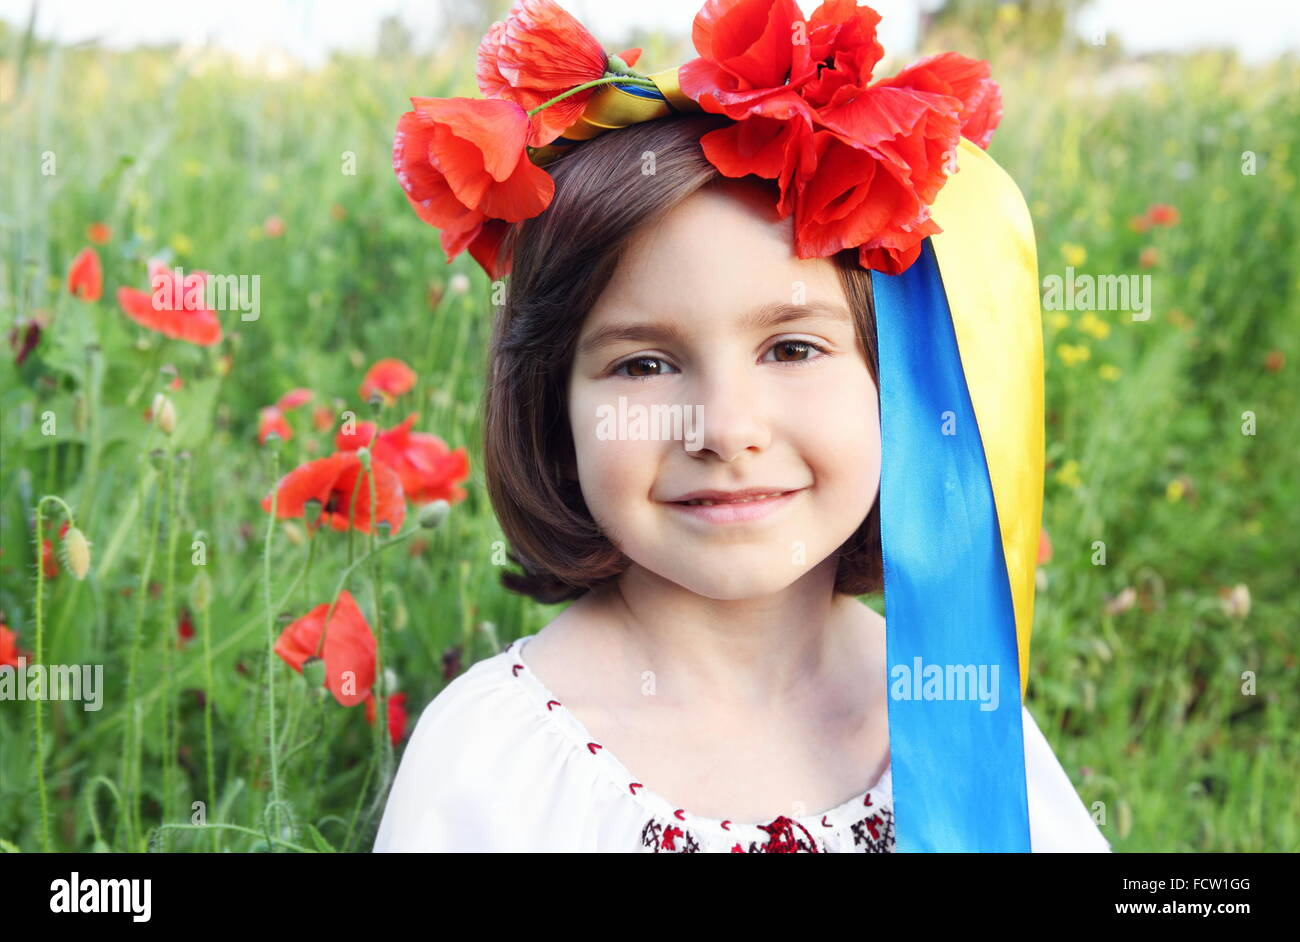 Smiling Girl on in Wreath with Yellow and Blue (Ukrainian Flag Colors) Ribbons - Stock Image